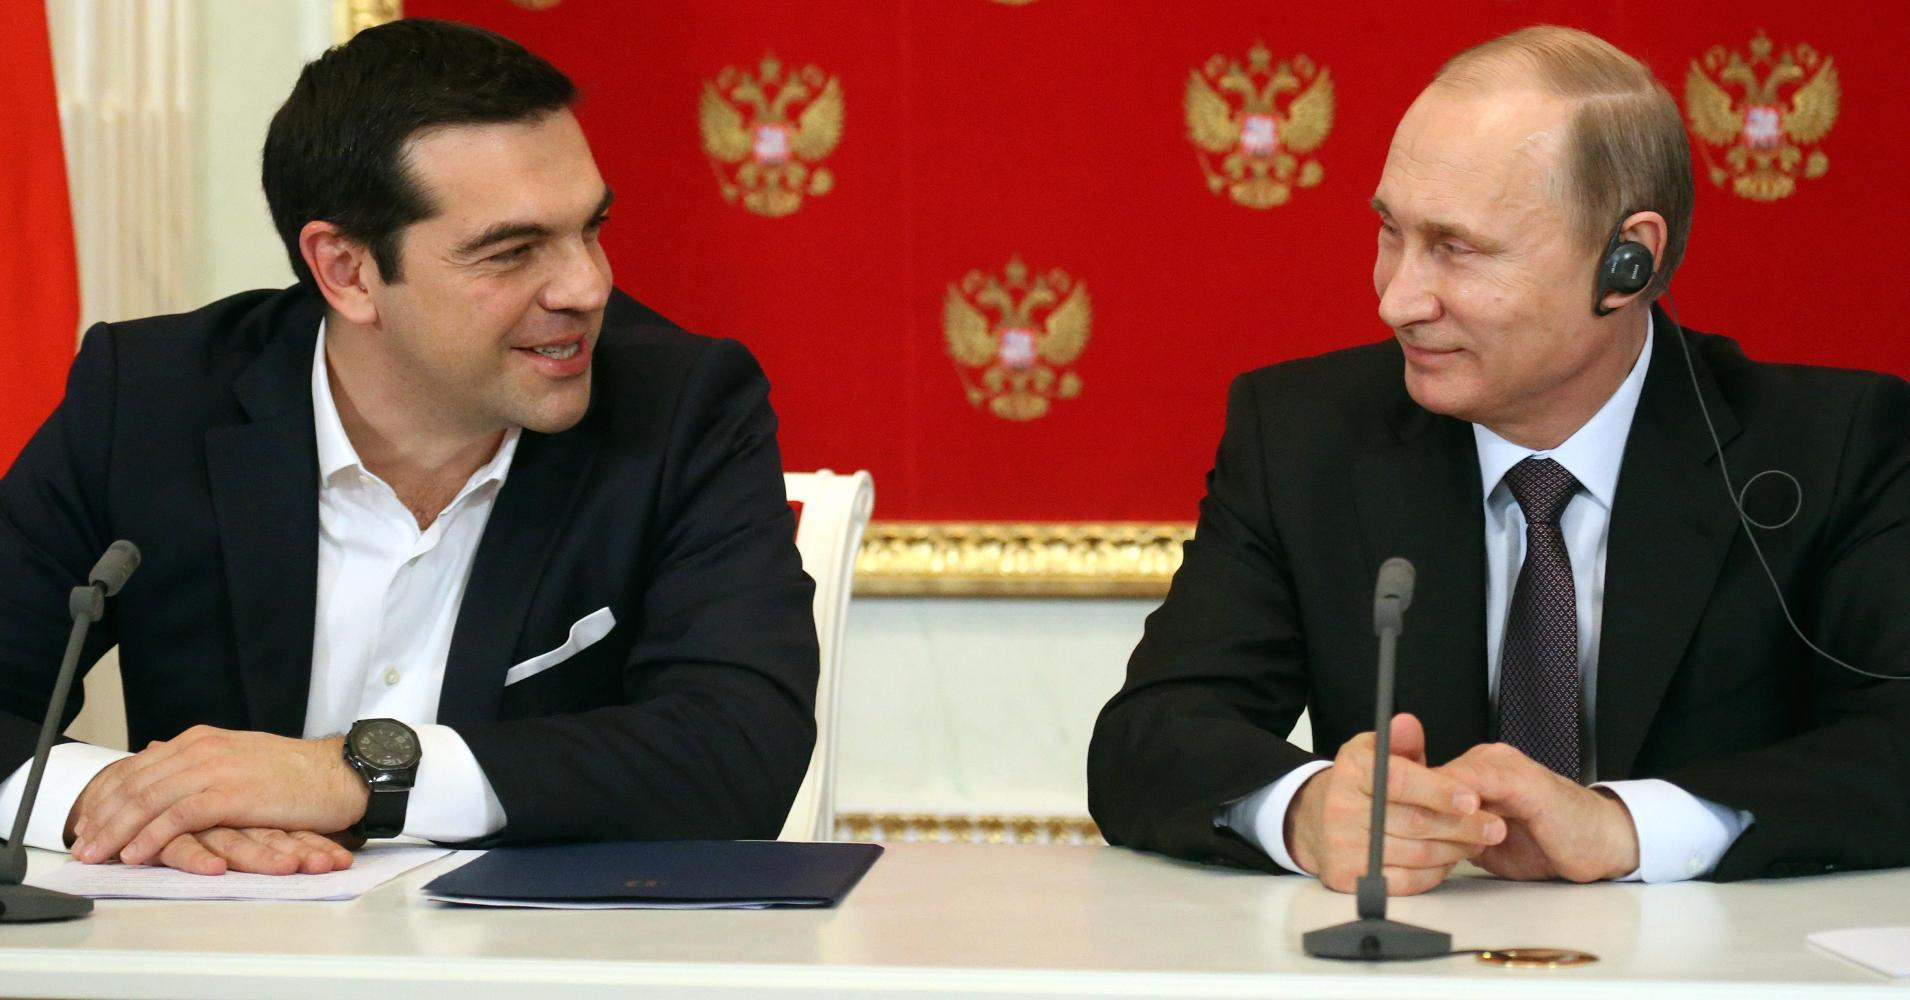 Why is Greece flirting with the Russians?